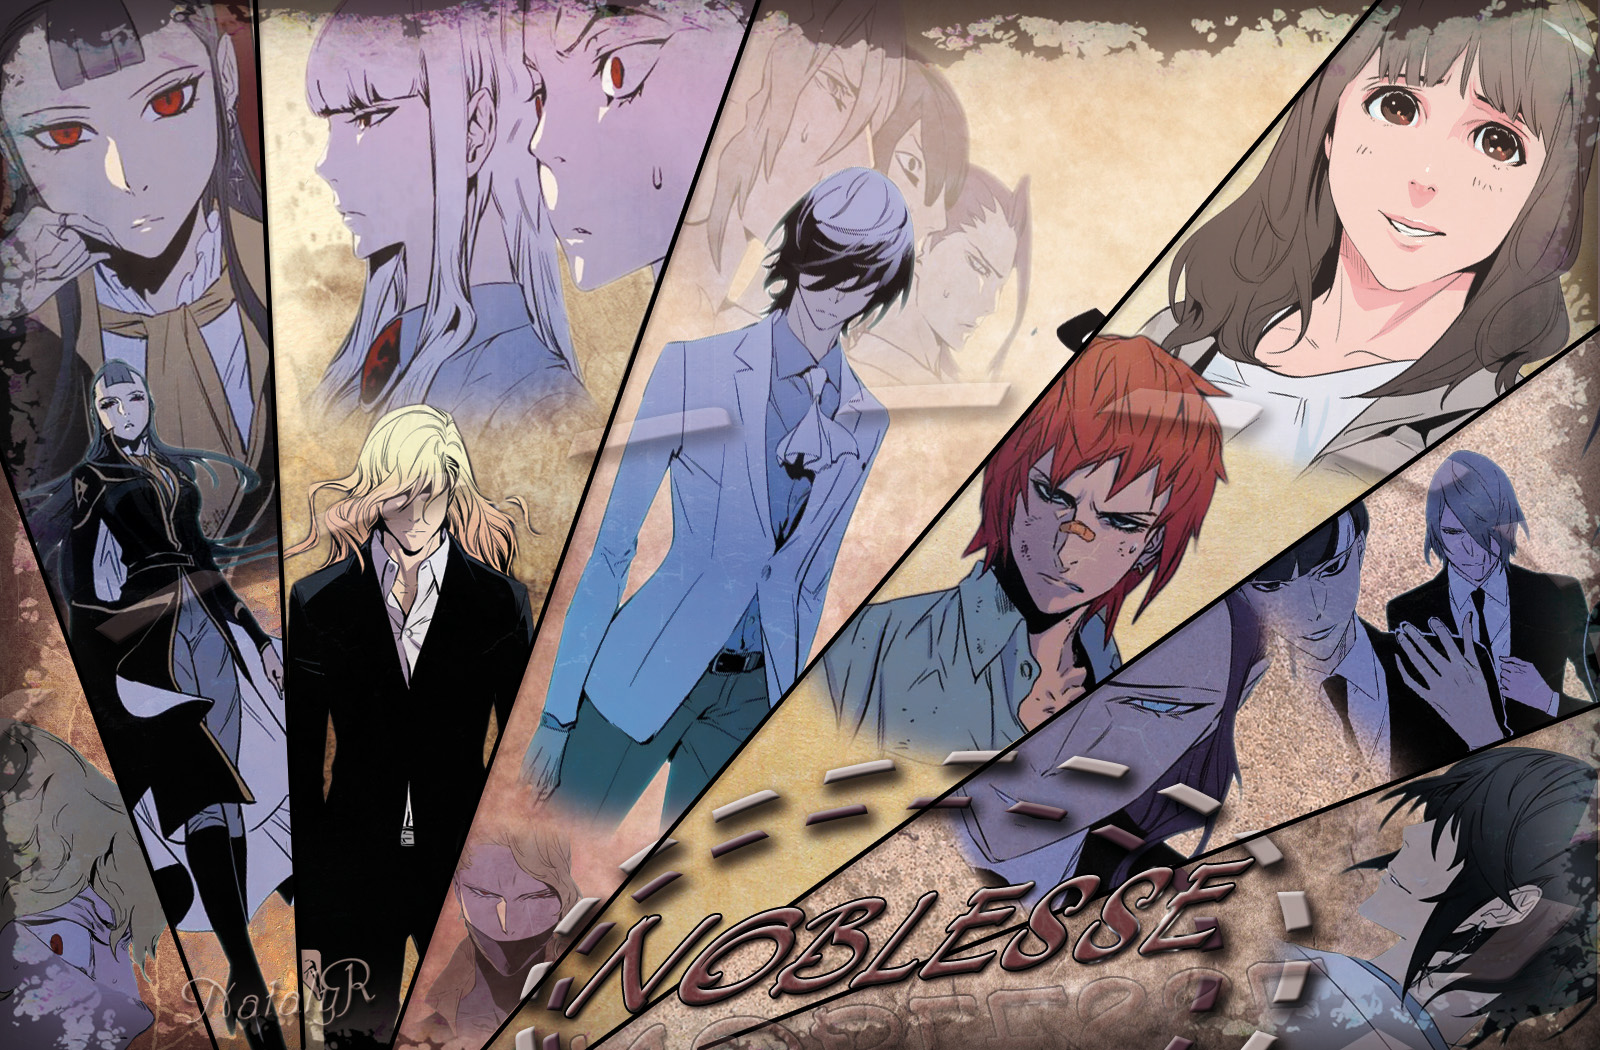 Noblesse Manga Images Noblesse Wallpaper Hd Wallpaper And Background Photos